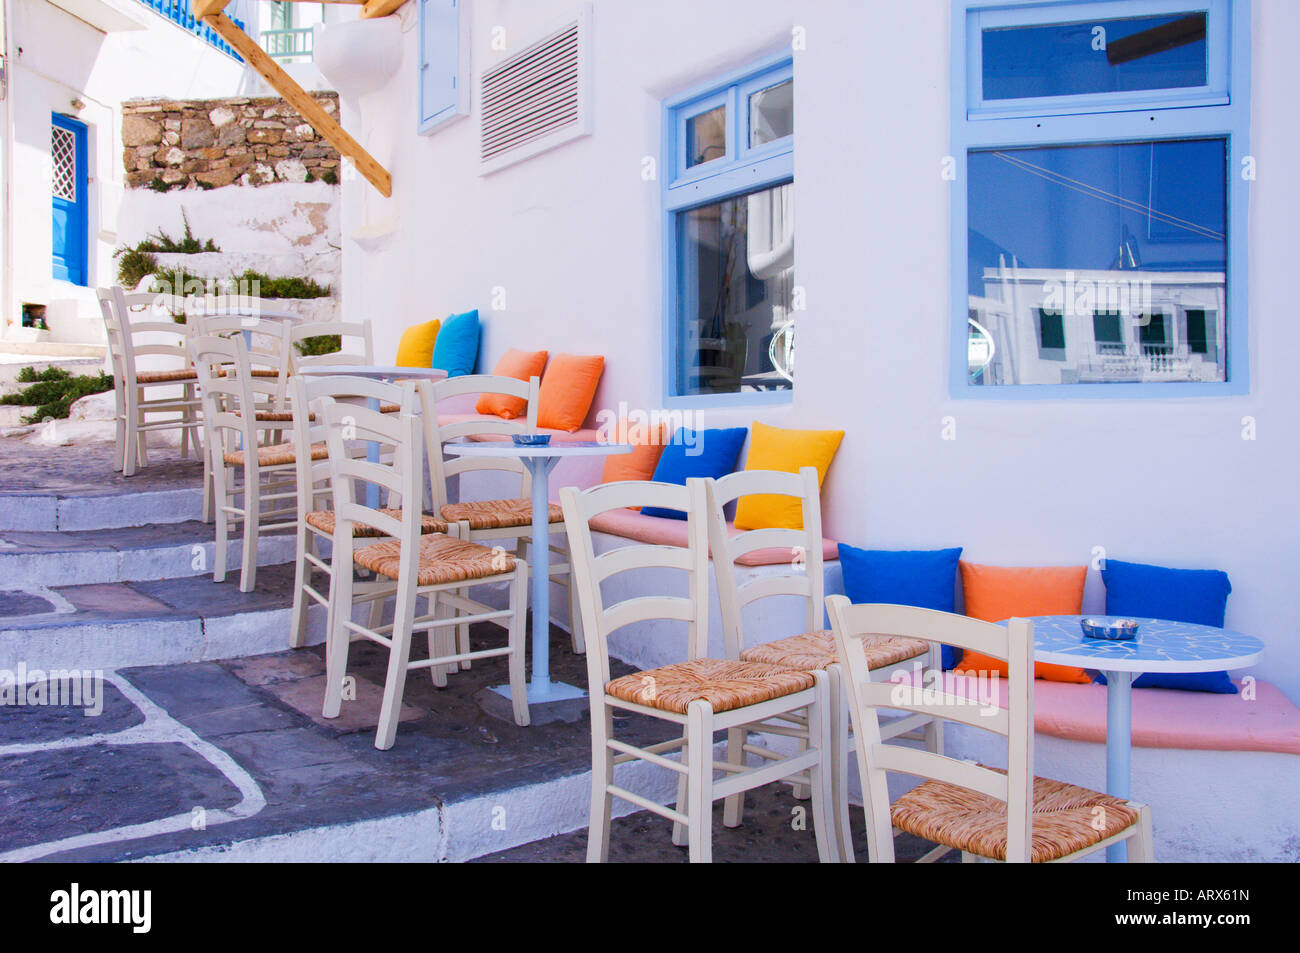 Tables and chairs add color design to restaurants